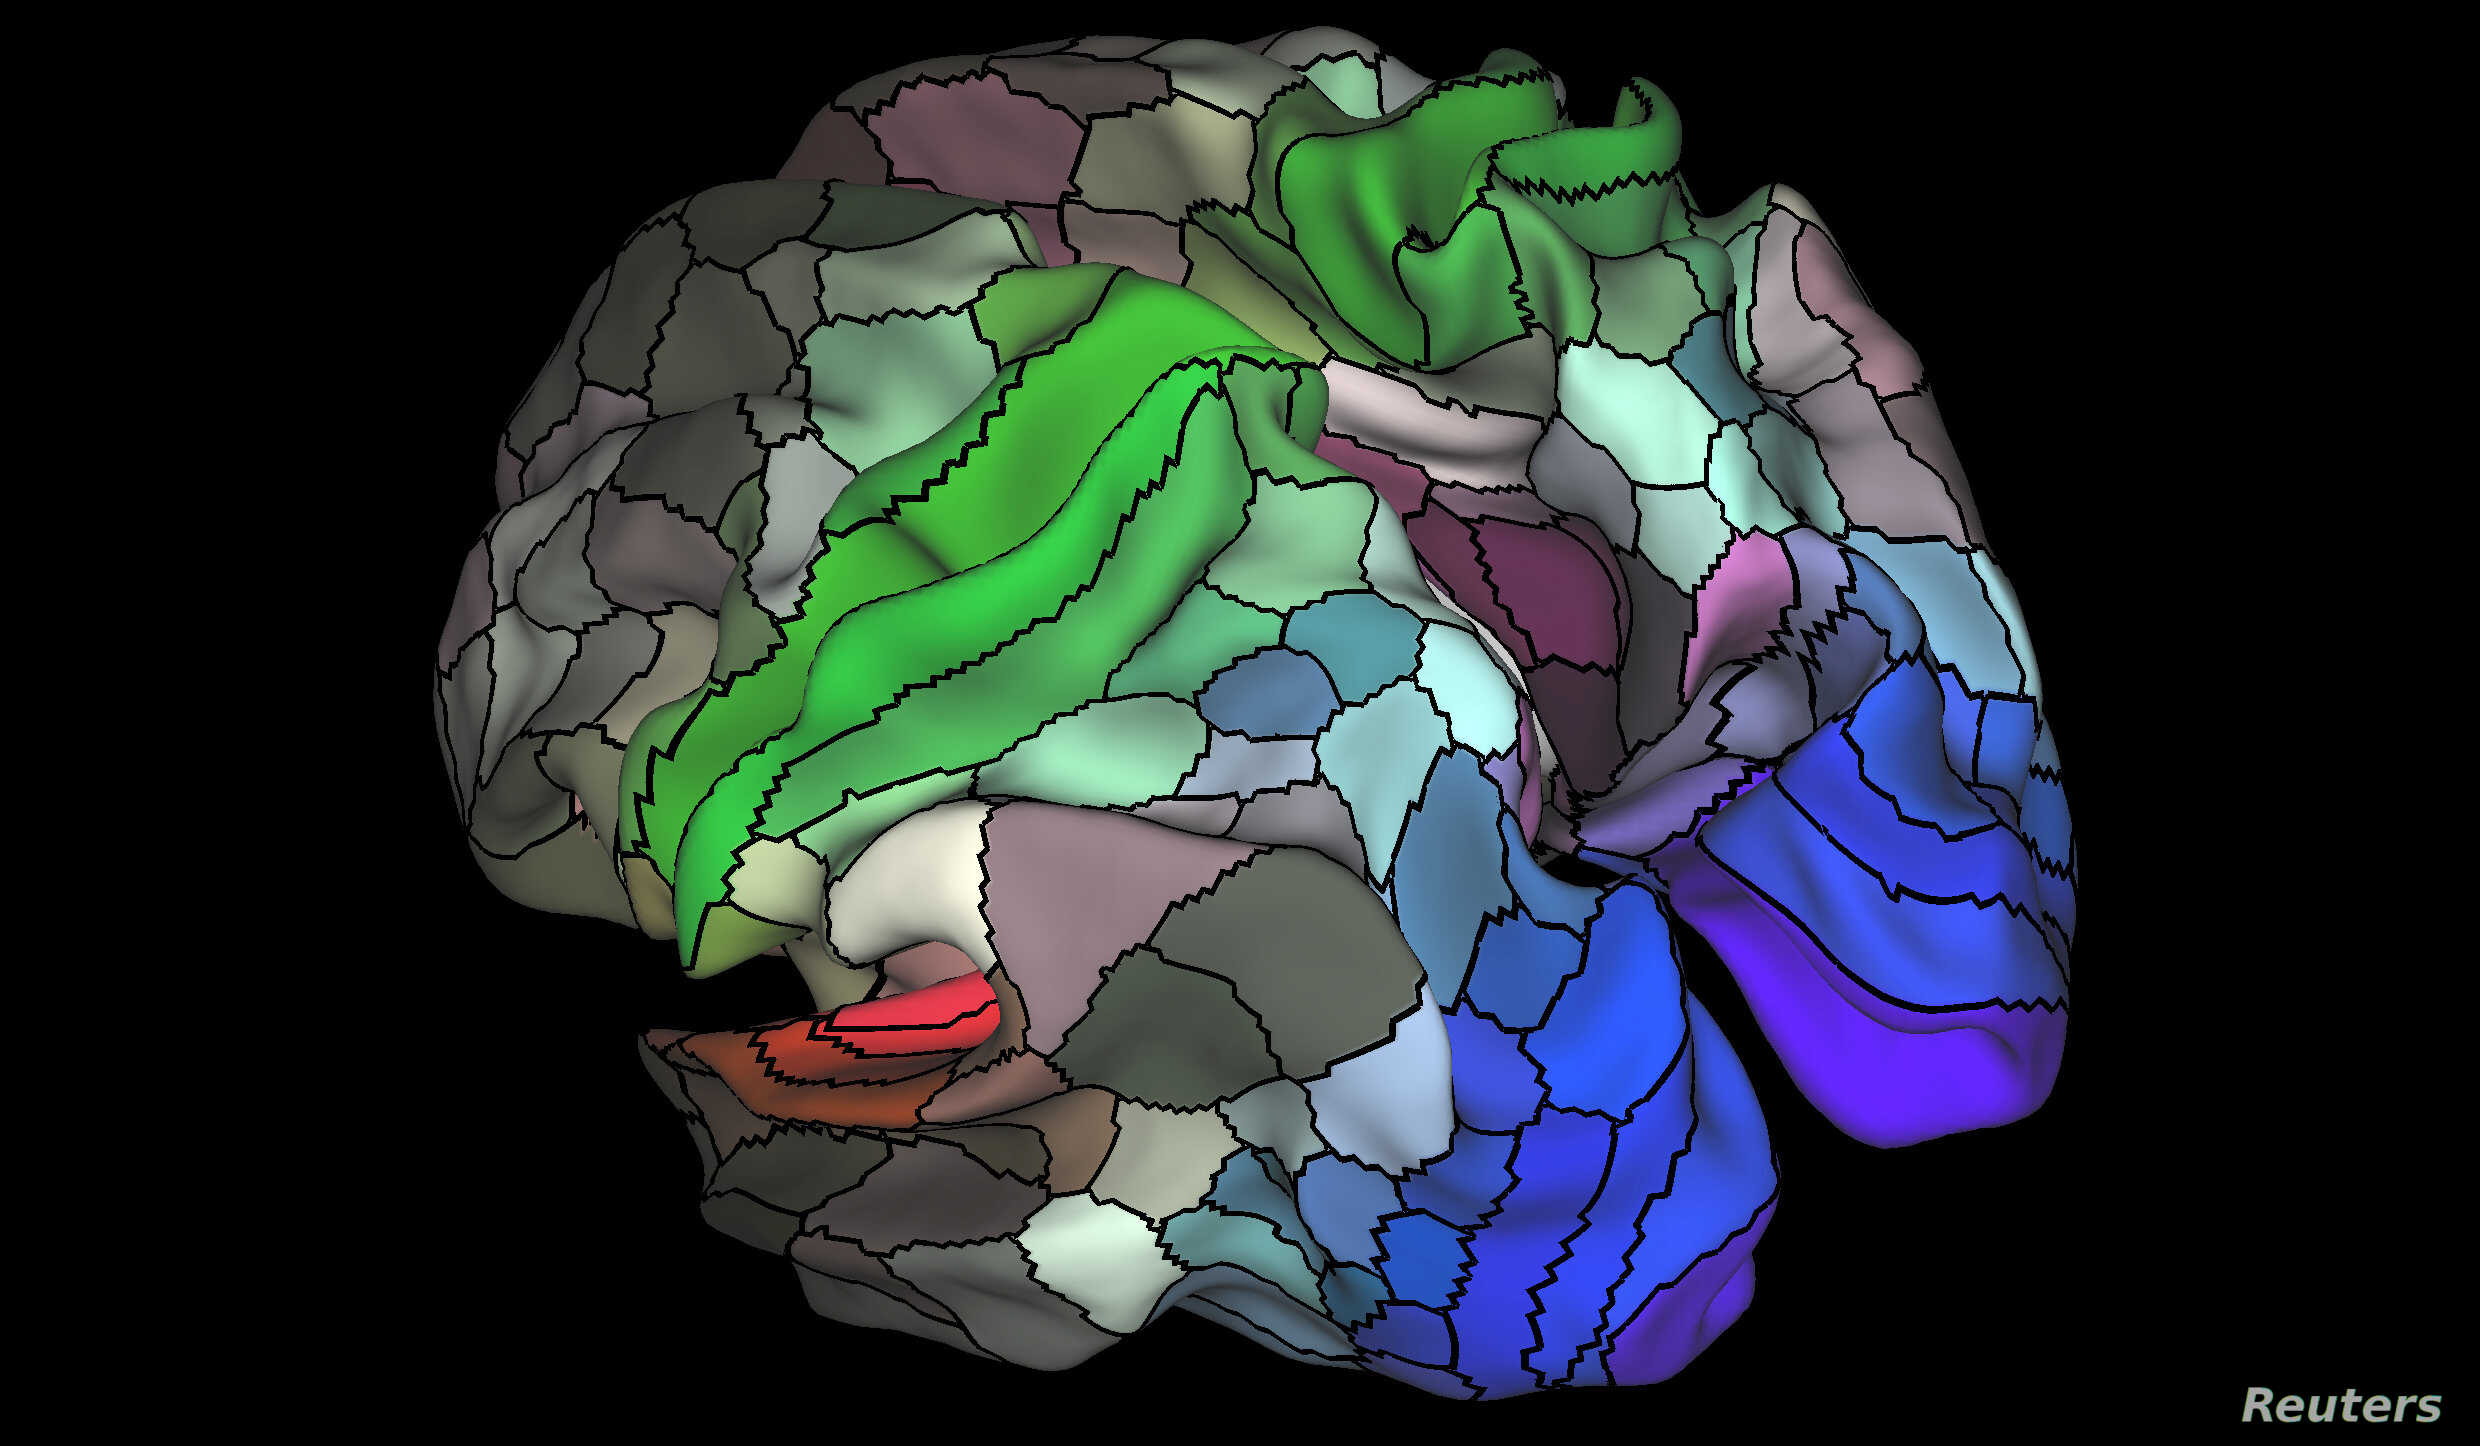 A 180-area multimodal human cortical parcellation on the left and right hemisphere surfaces of the human brain is pictured in this undated handout image.